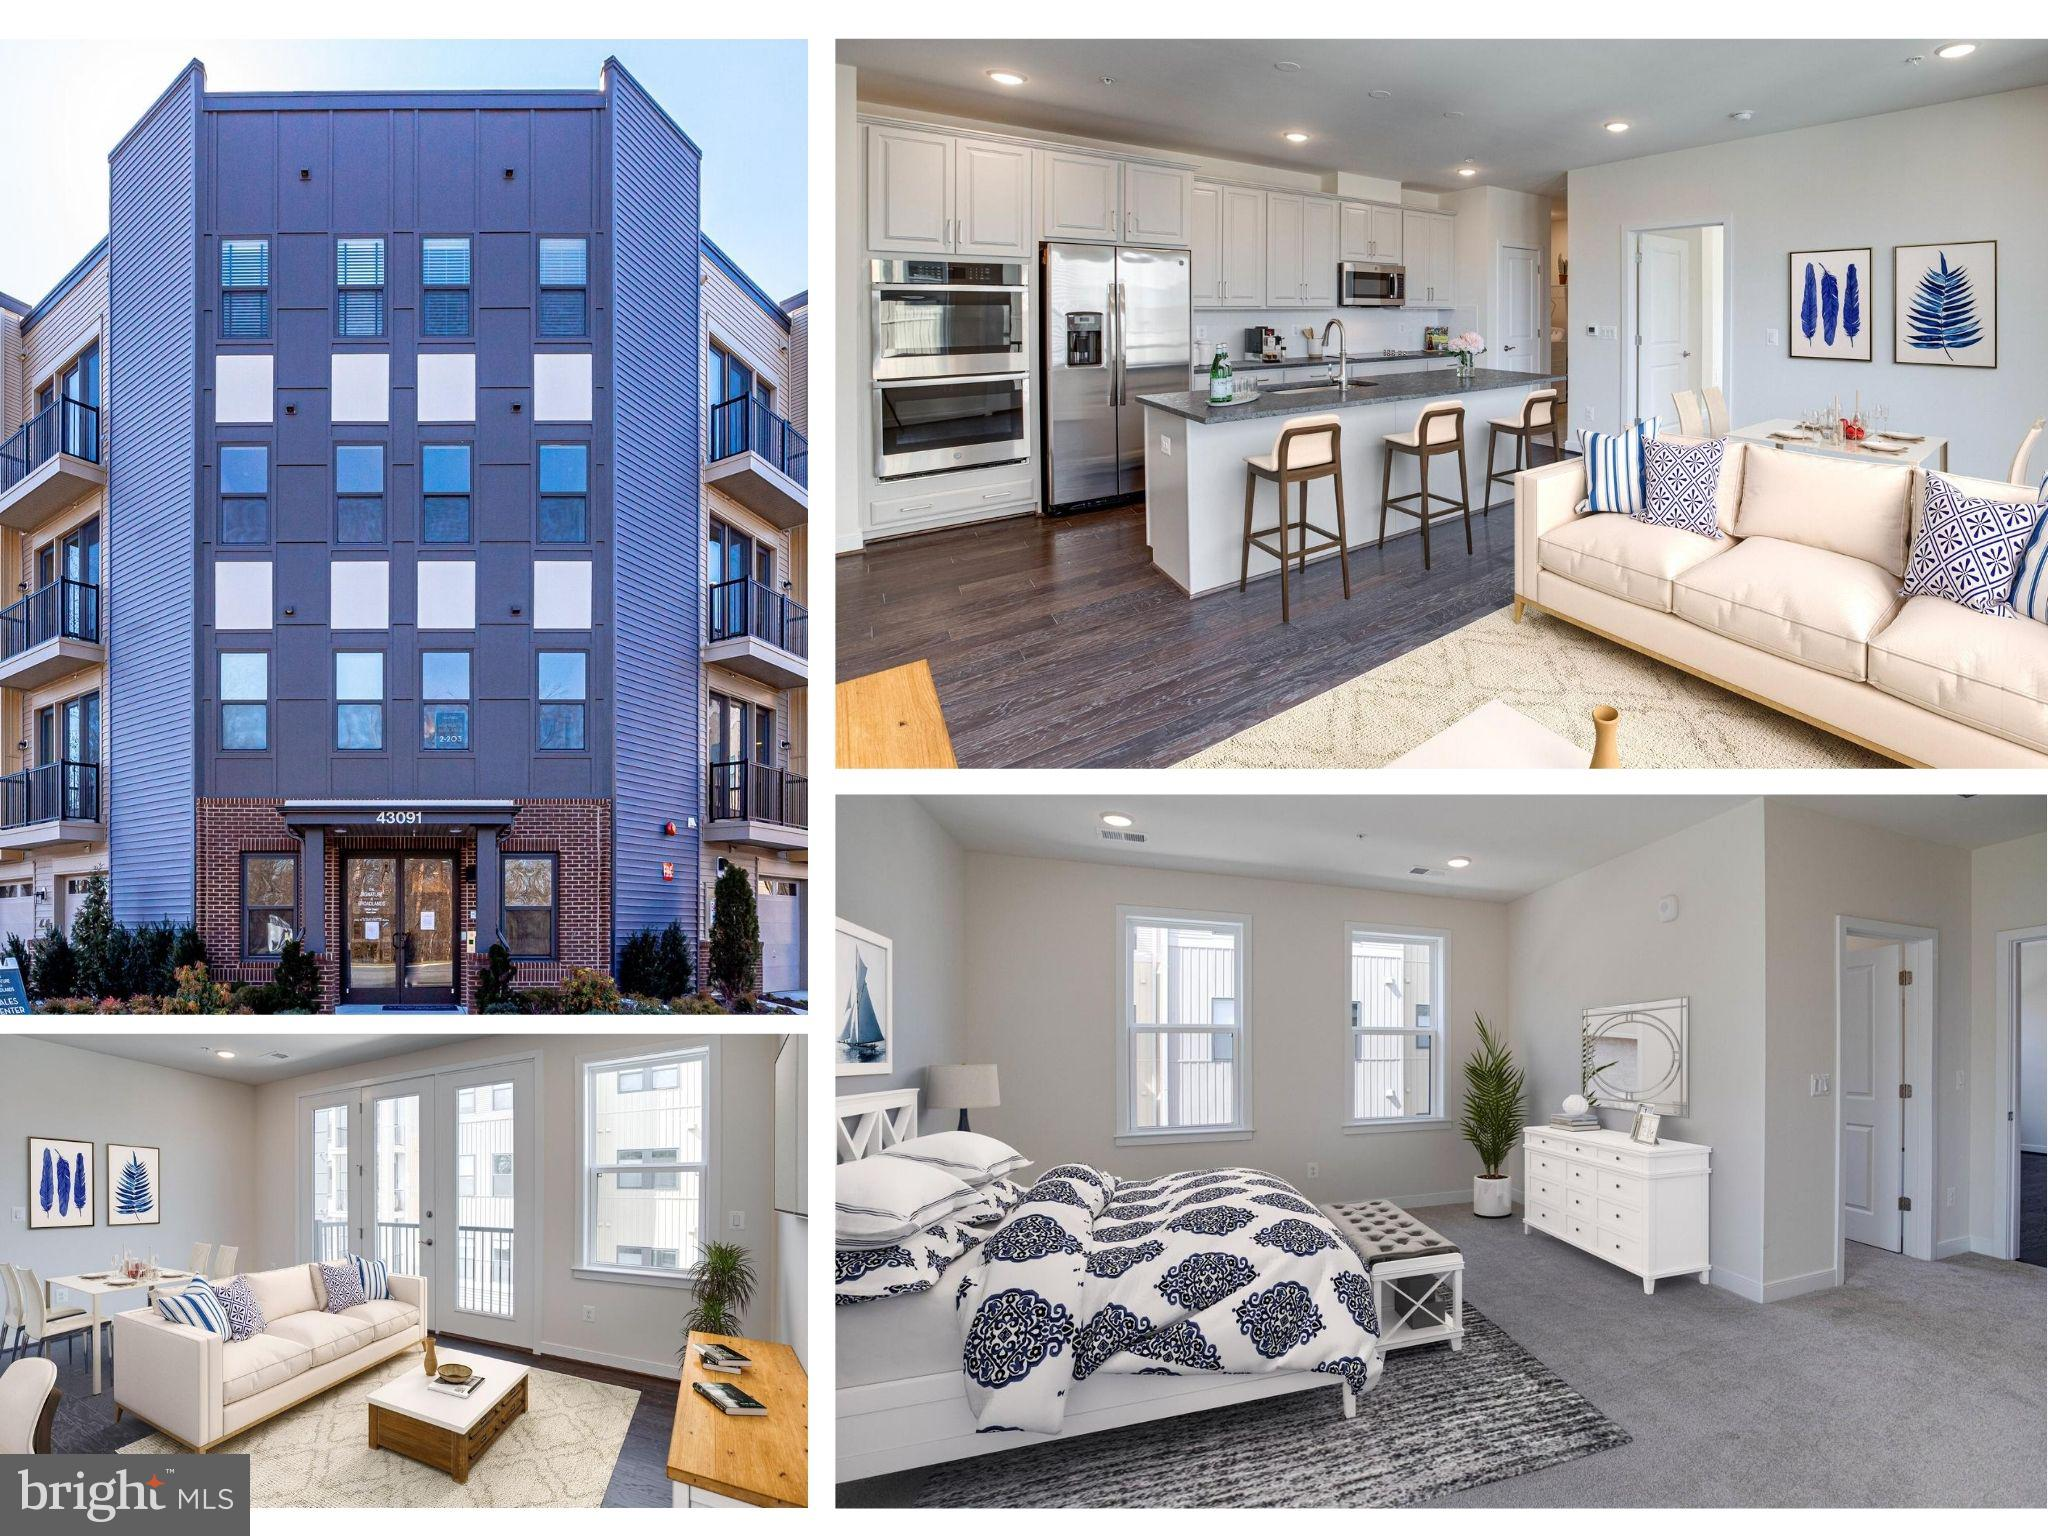 This is your last chance to purchase new construction at the Signature at Broadlands, a welcoming 55